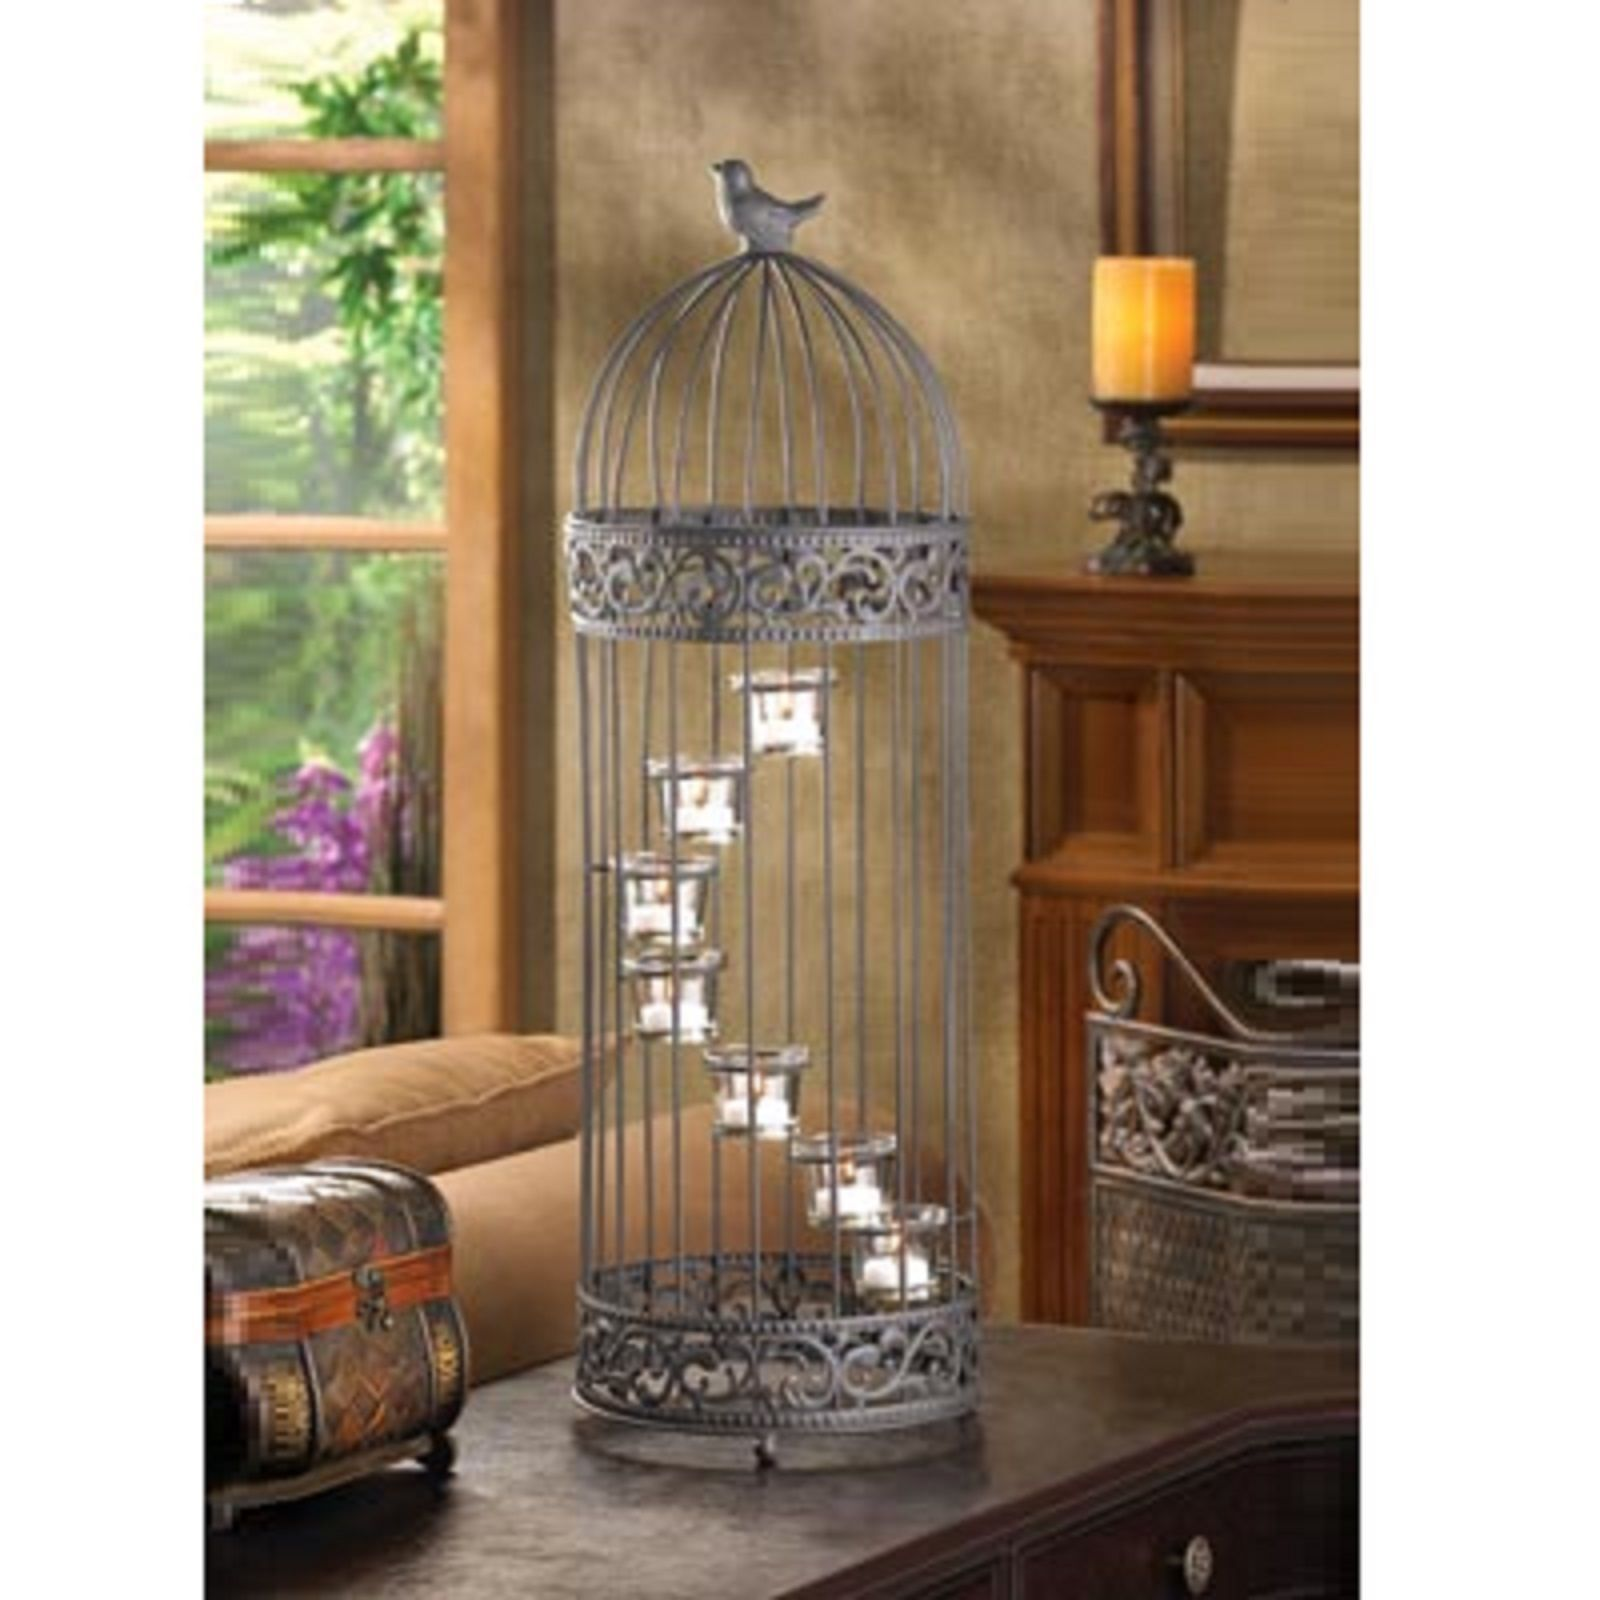 5 BLACK CANDLE Lantern Birdcage Wedding CENTERPIECES image 1